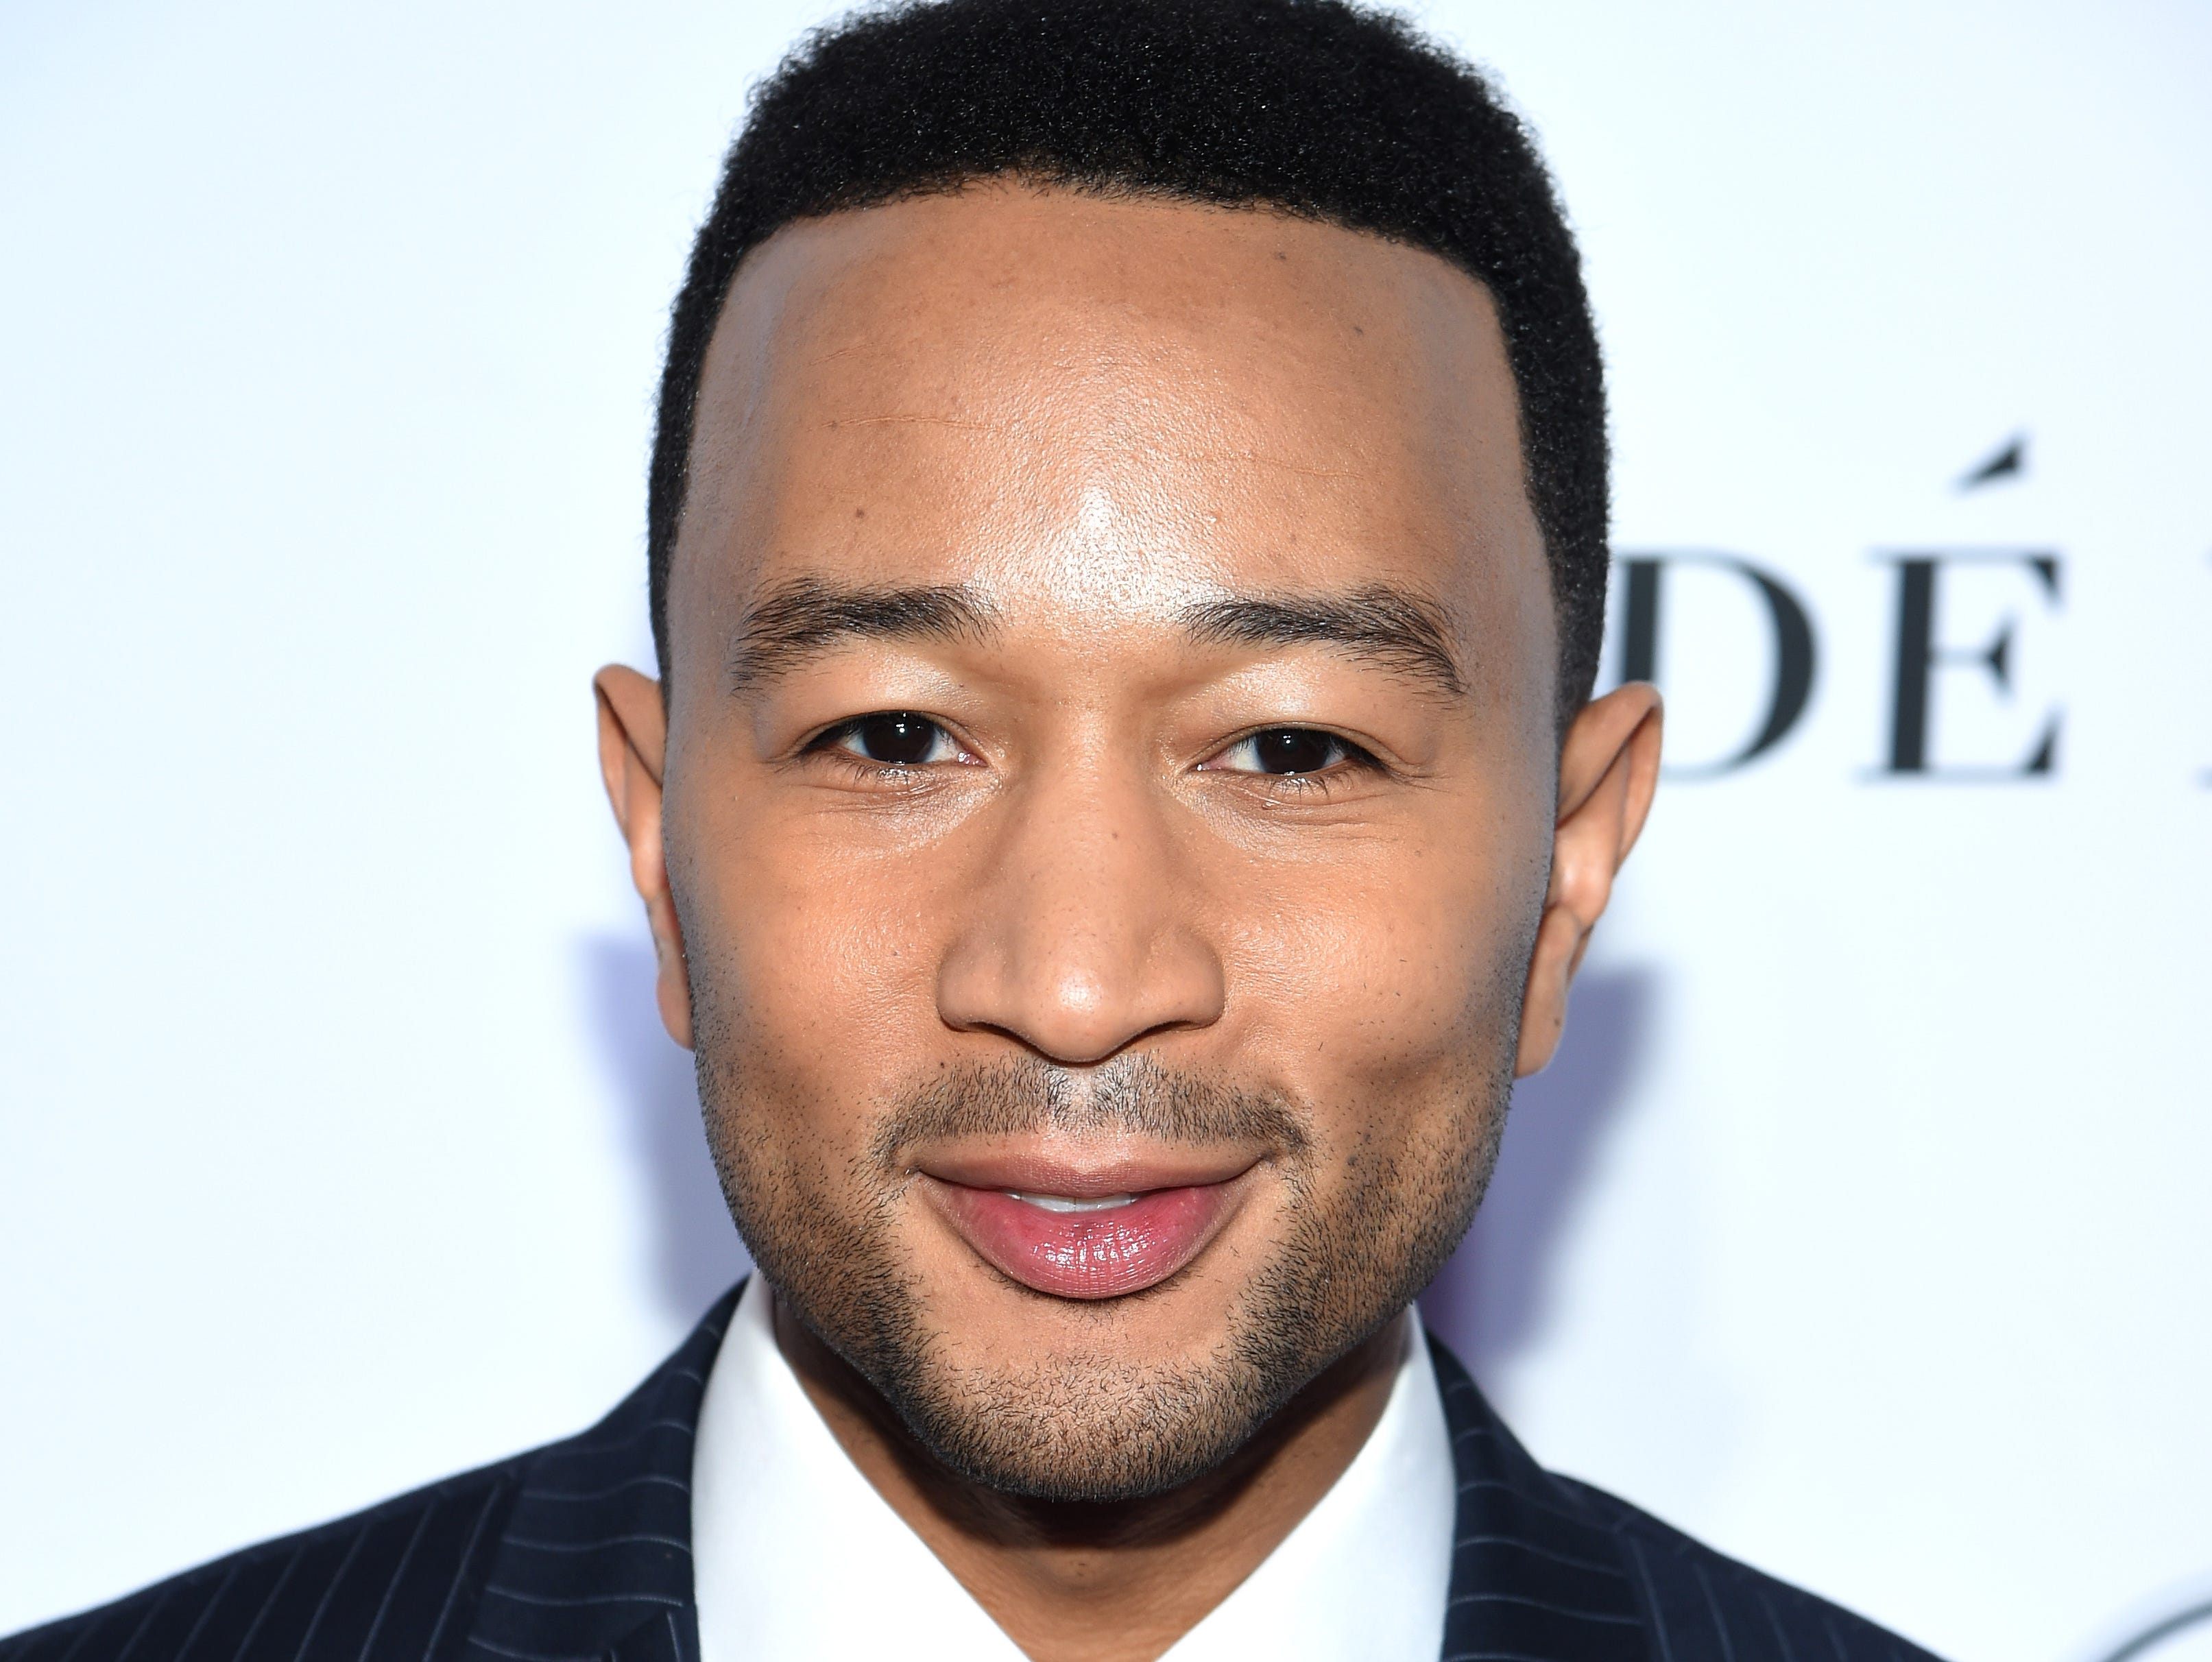 NEW YORK, NY - NOVEMBER 12:  John Legend attends the 2018 Glamour Women Of The Year Awards: Women Rise on November 12, 2018 in New York City.  (Photo by Dimitrios Kambouris/Getty Images for Glamour) ORG XMIT: 775248519 ORIG FILE ID: 1060780422